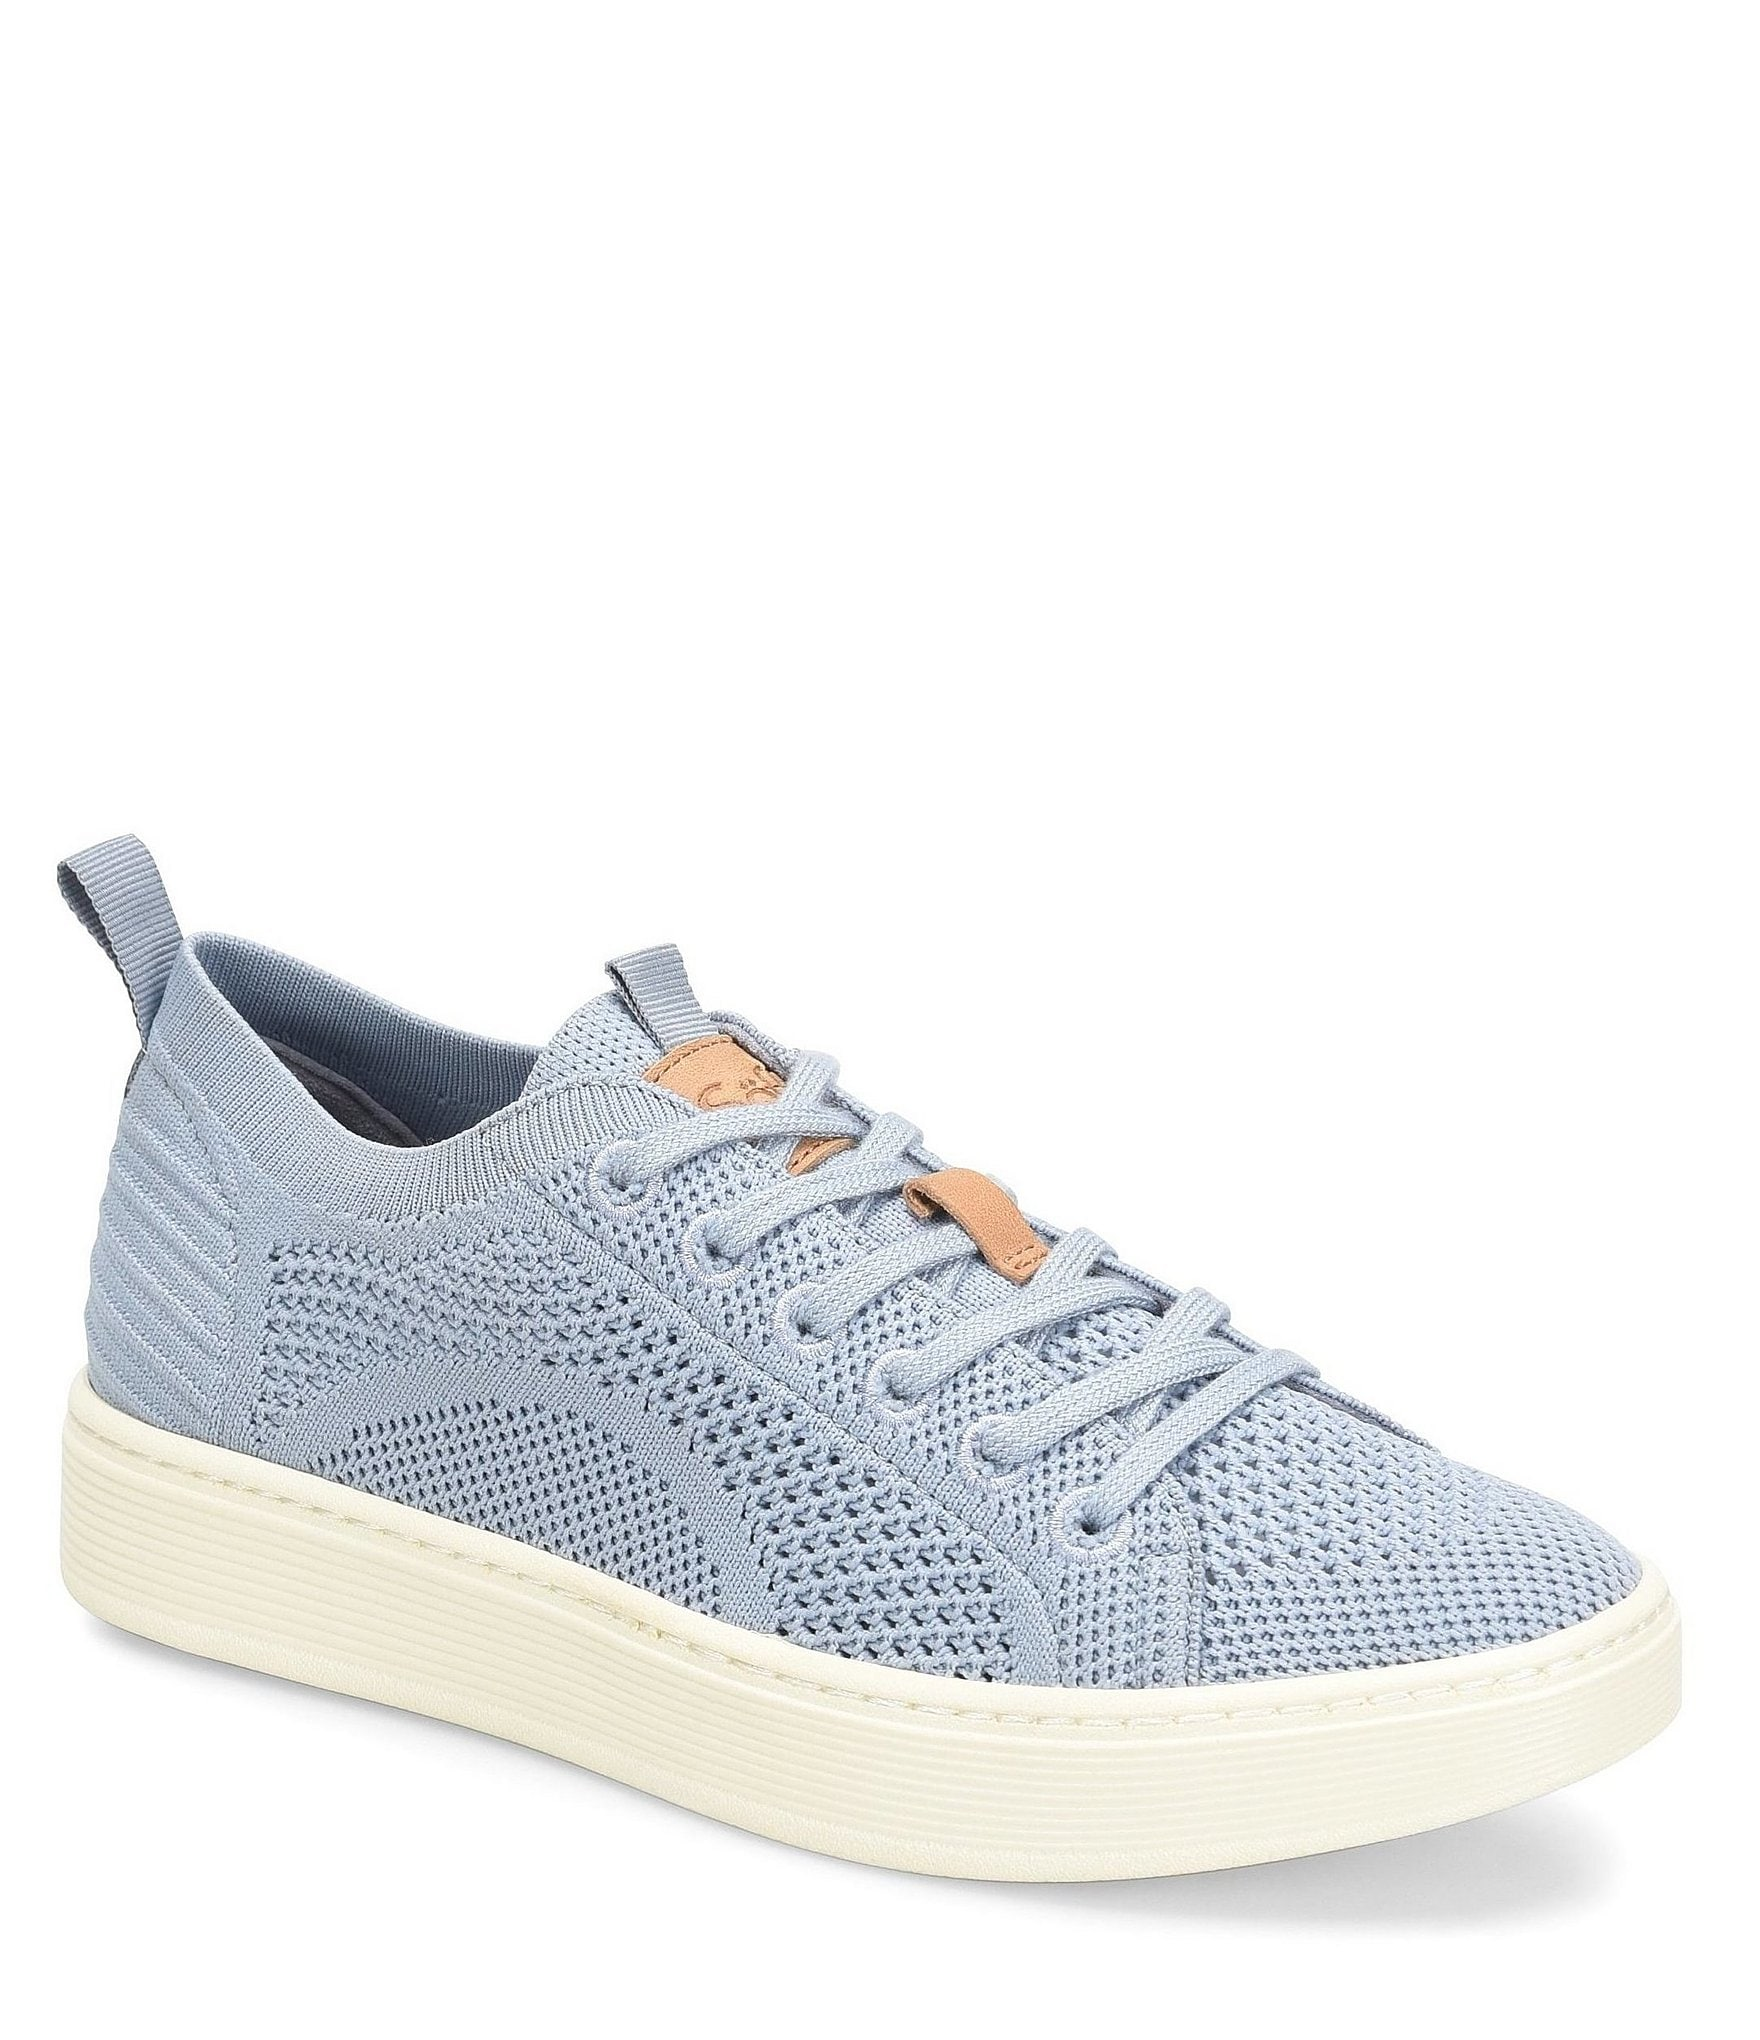 Sofft Somers Knit Mesh Lace-Up Sneakers